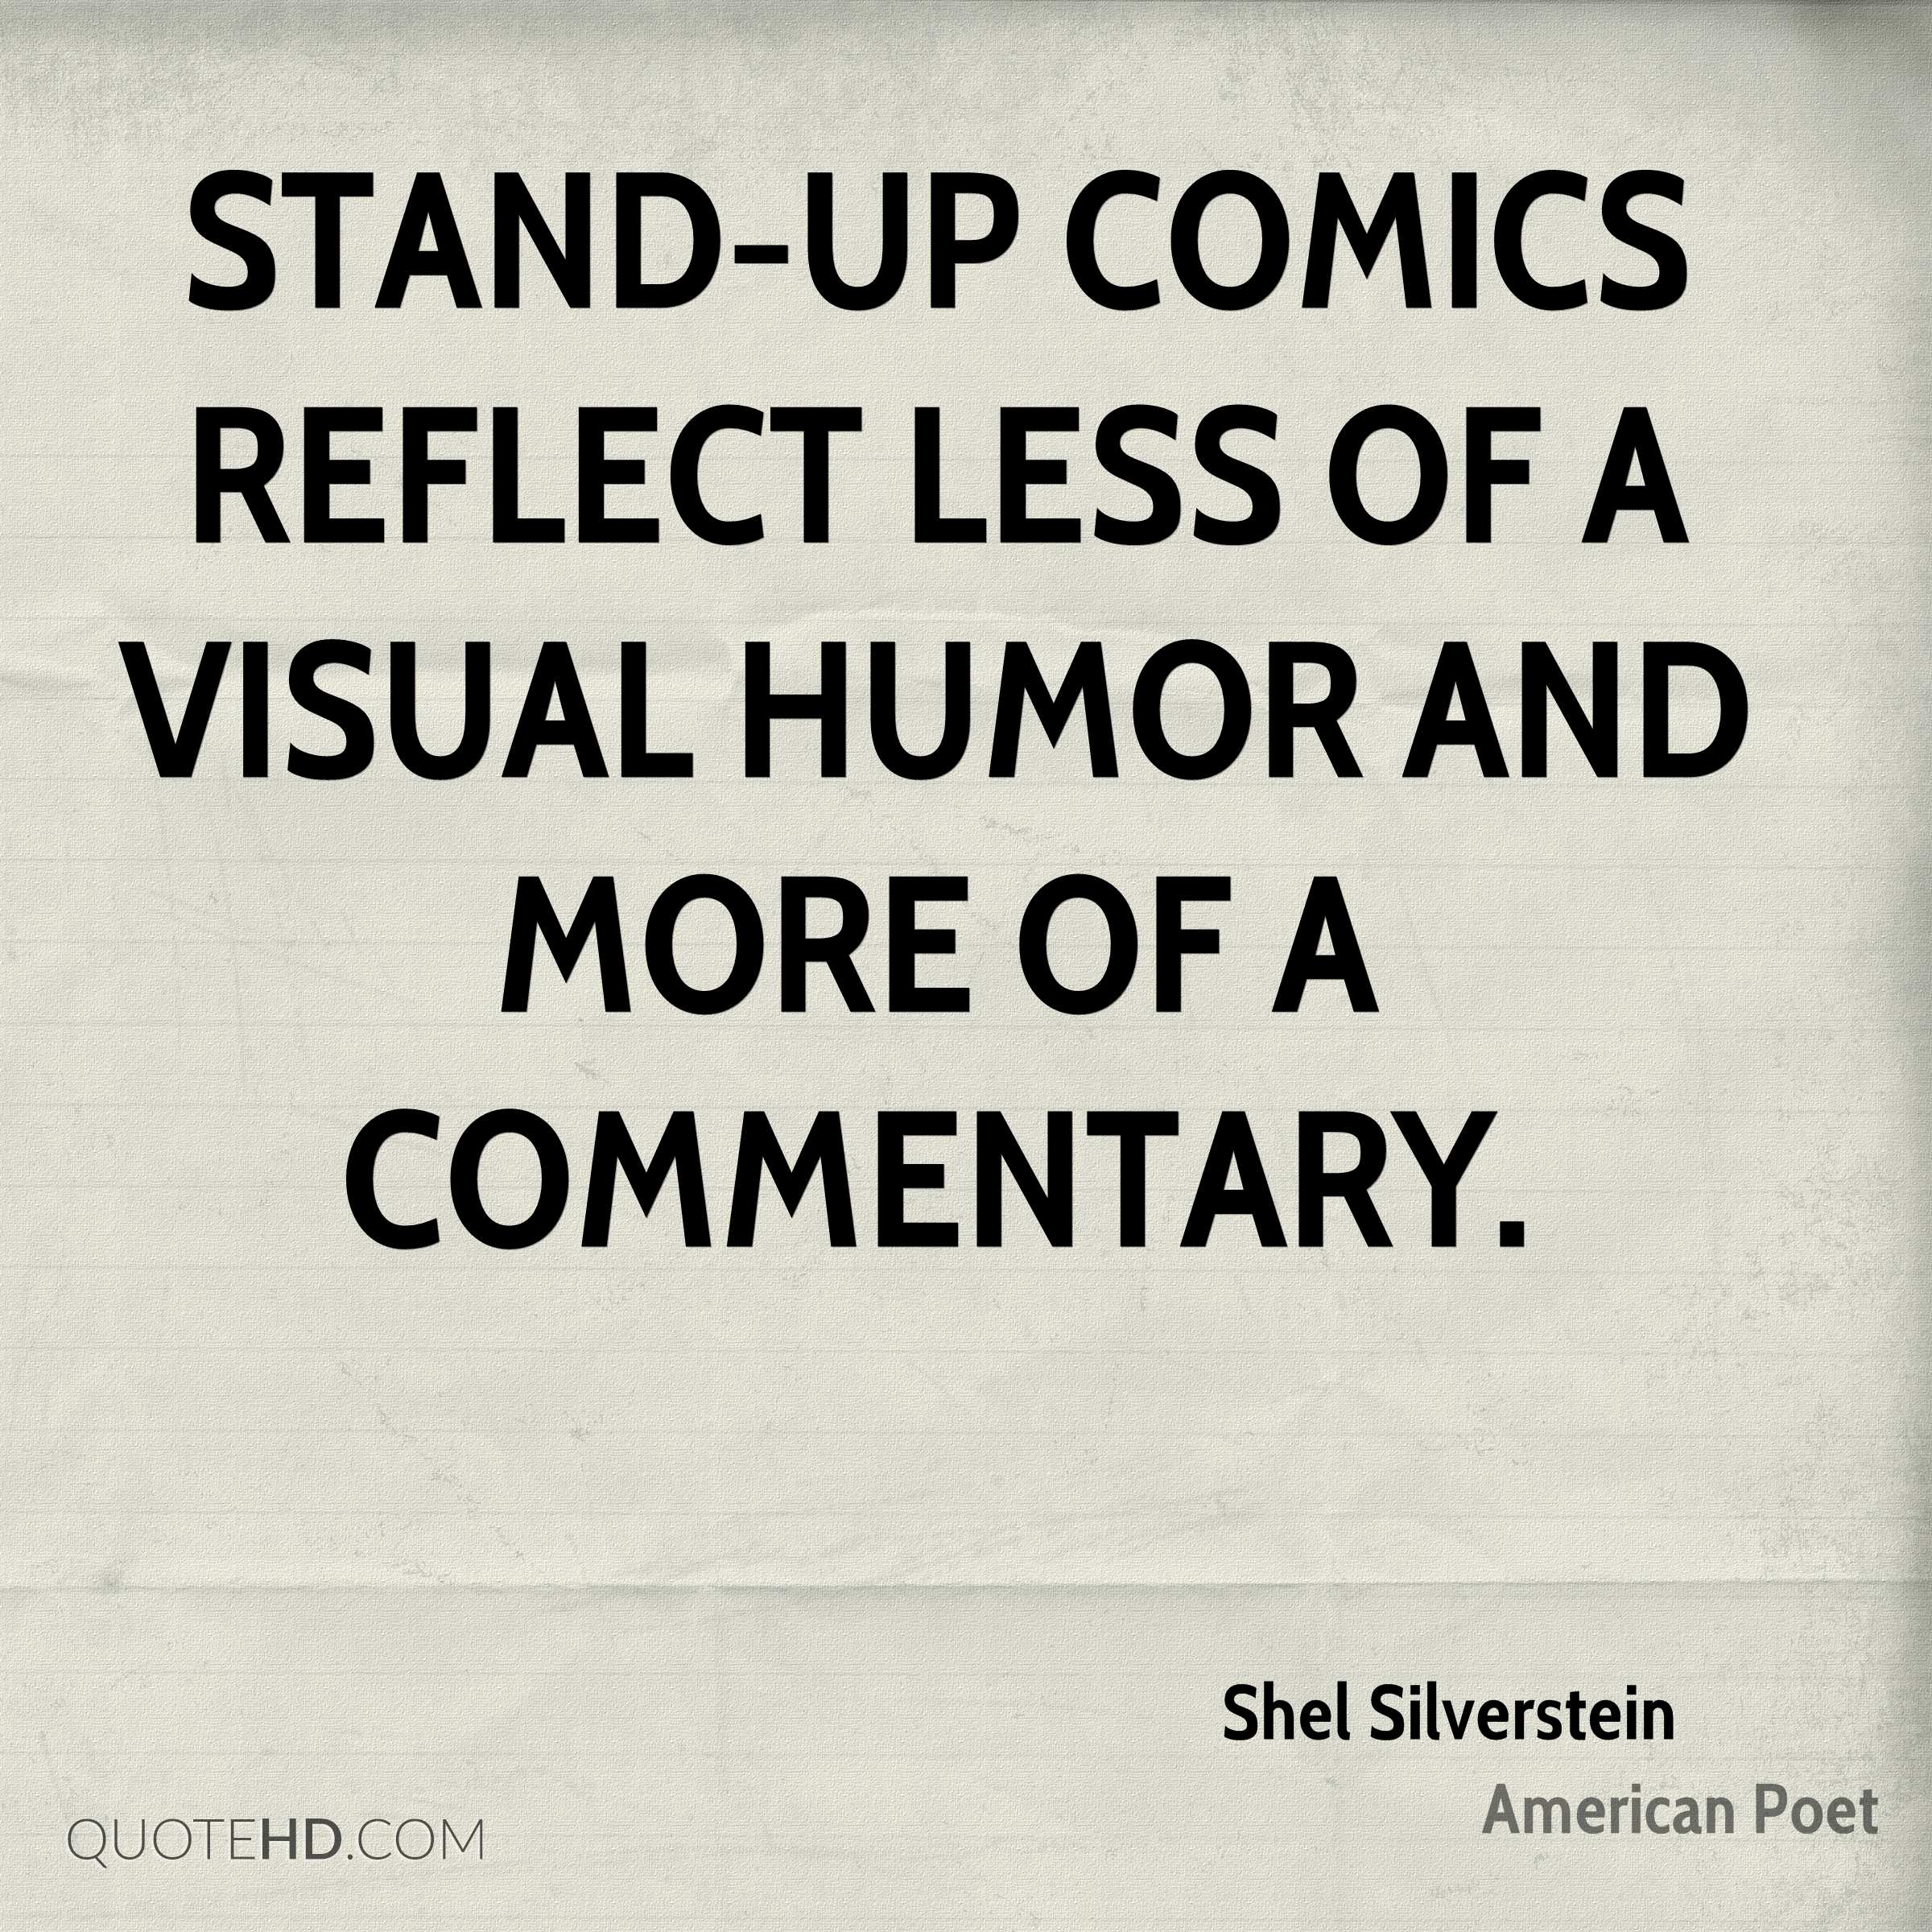 Stand-up comics reflect less of a visual humor and more of a commentary.